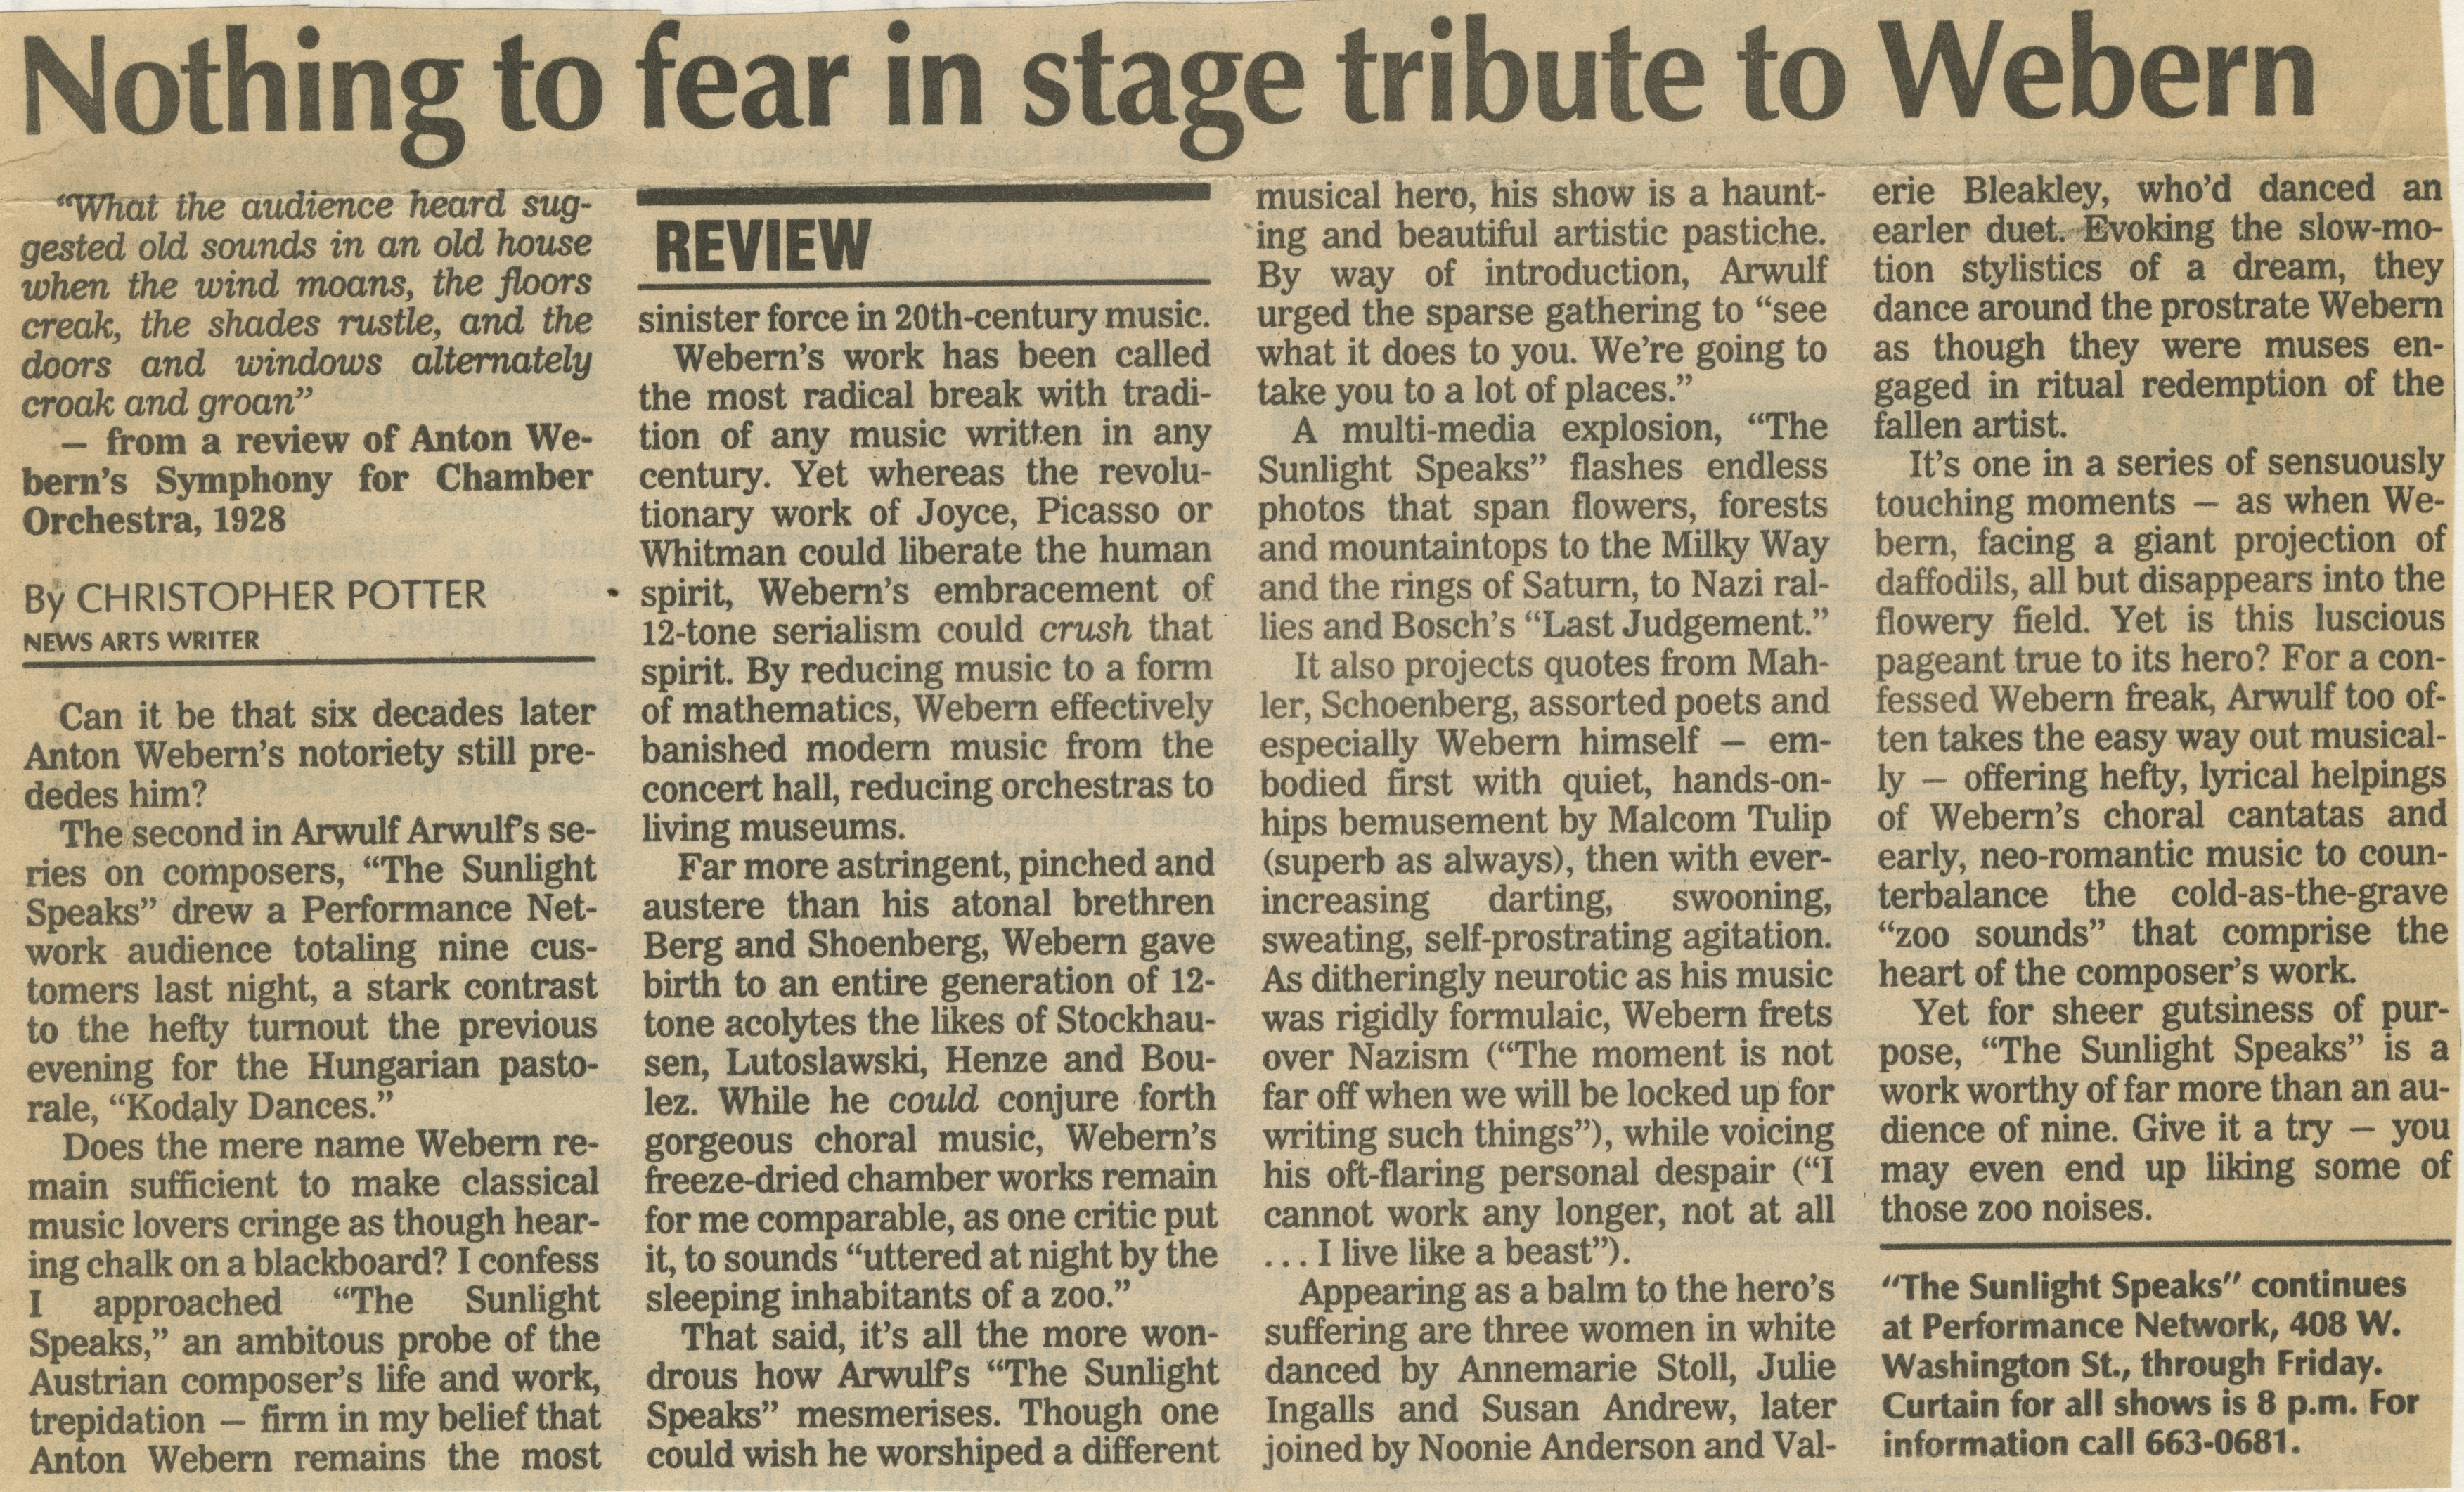 Nothing to fear in stage tribute to Webern image